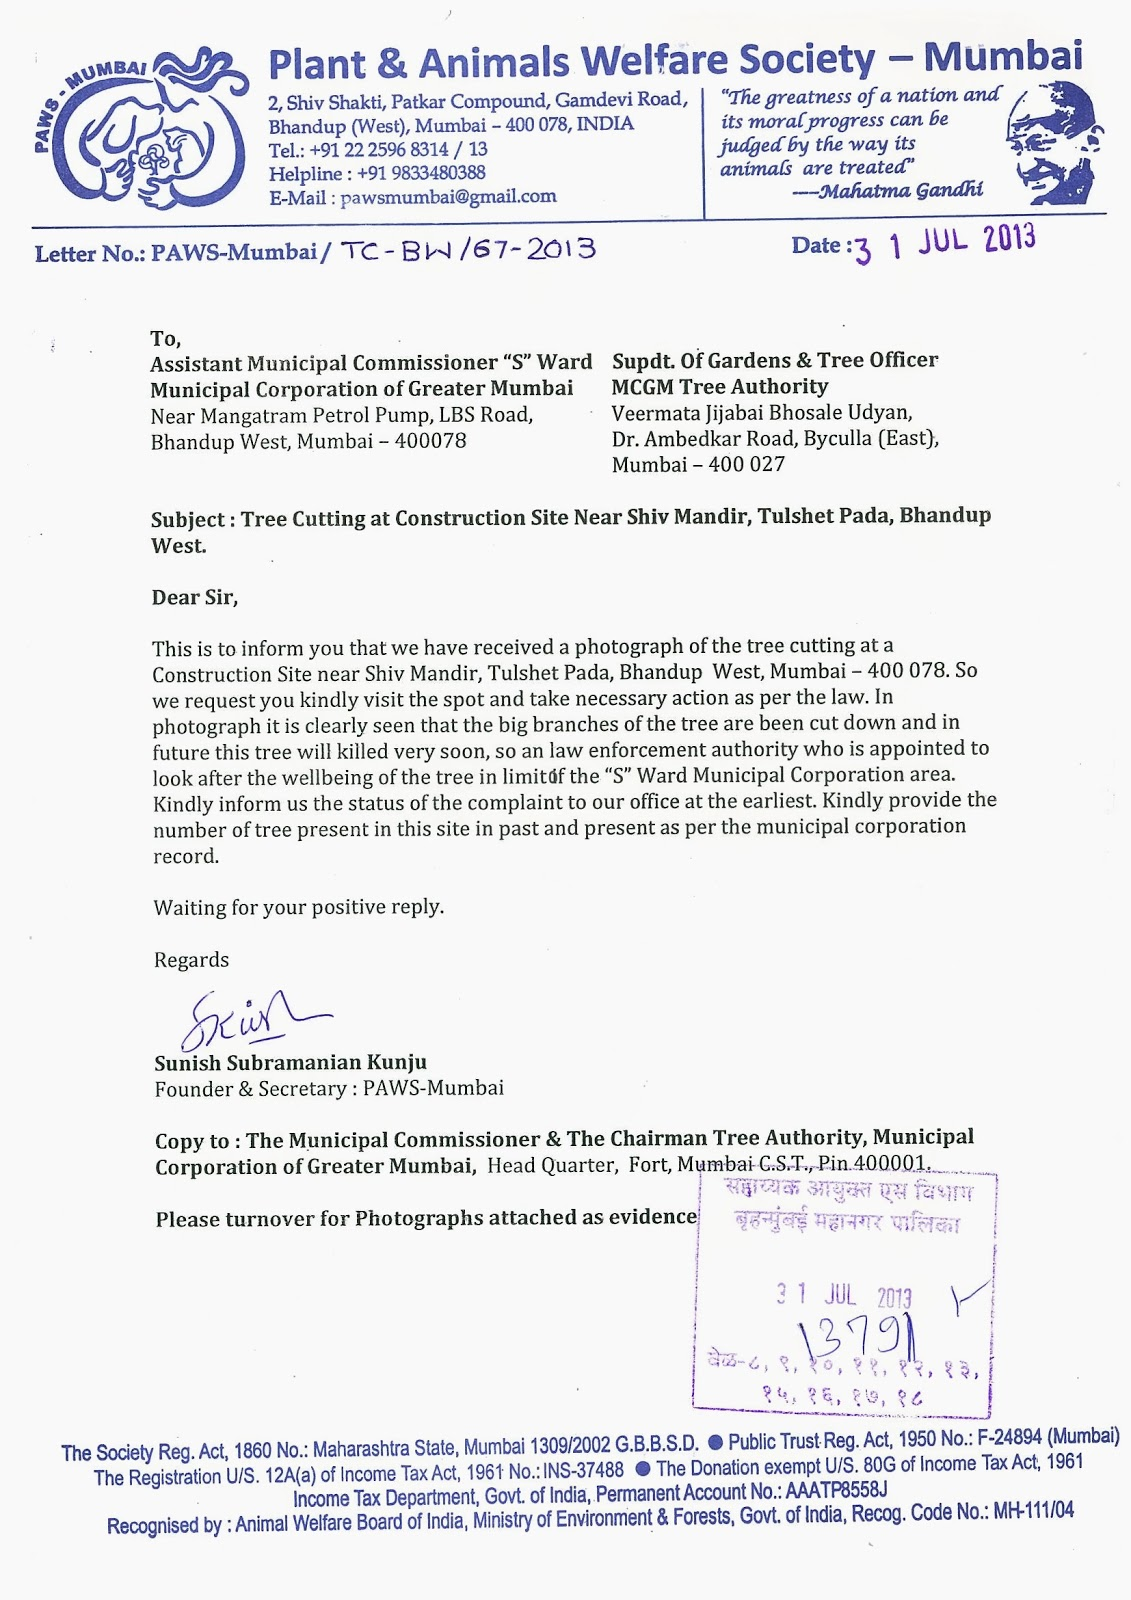 Paws mumbai press kit update paws mumbai send suggestion to mcgm copy of tree cutting complaint letter photographs to mcgm s ward spiritdancerdesigns Image collections